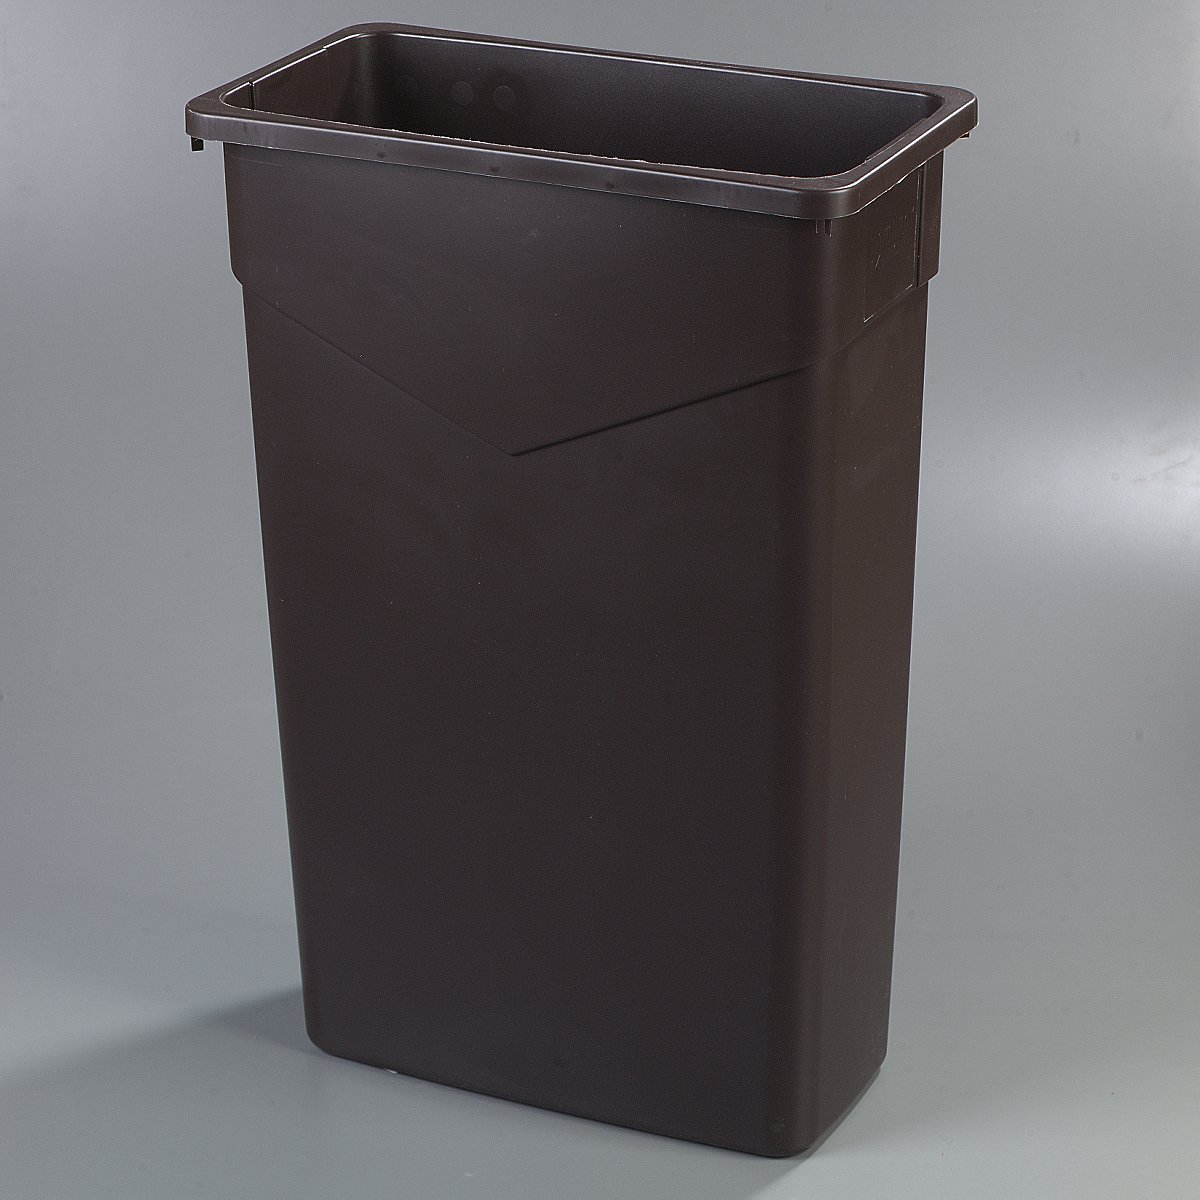 Carlisle 34202323 TrimLine Rectangle Waste Container Trash Can Only 23 Gallon Gray